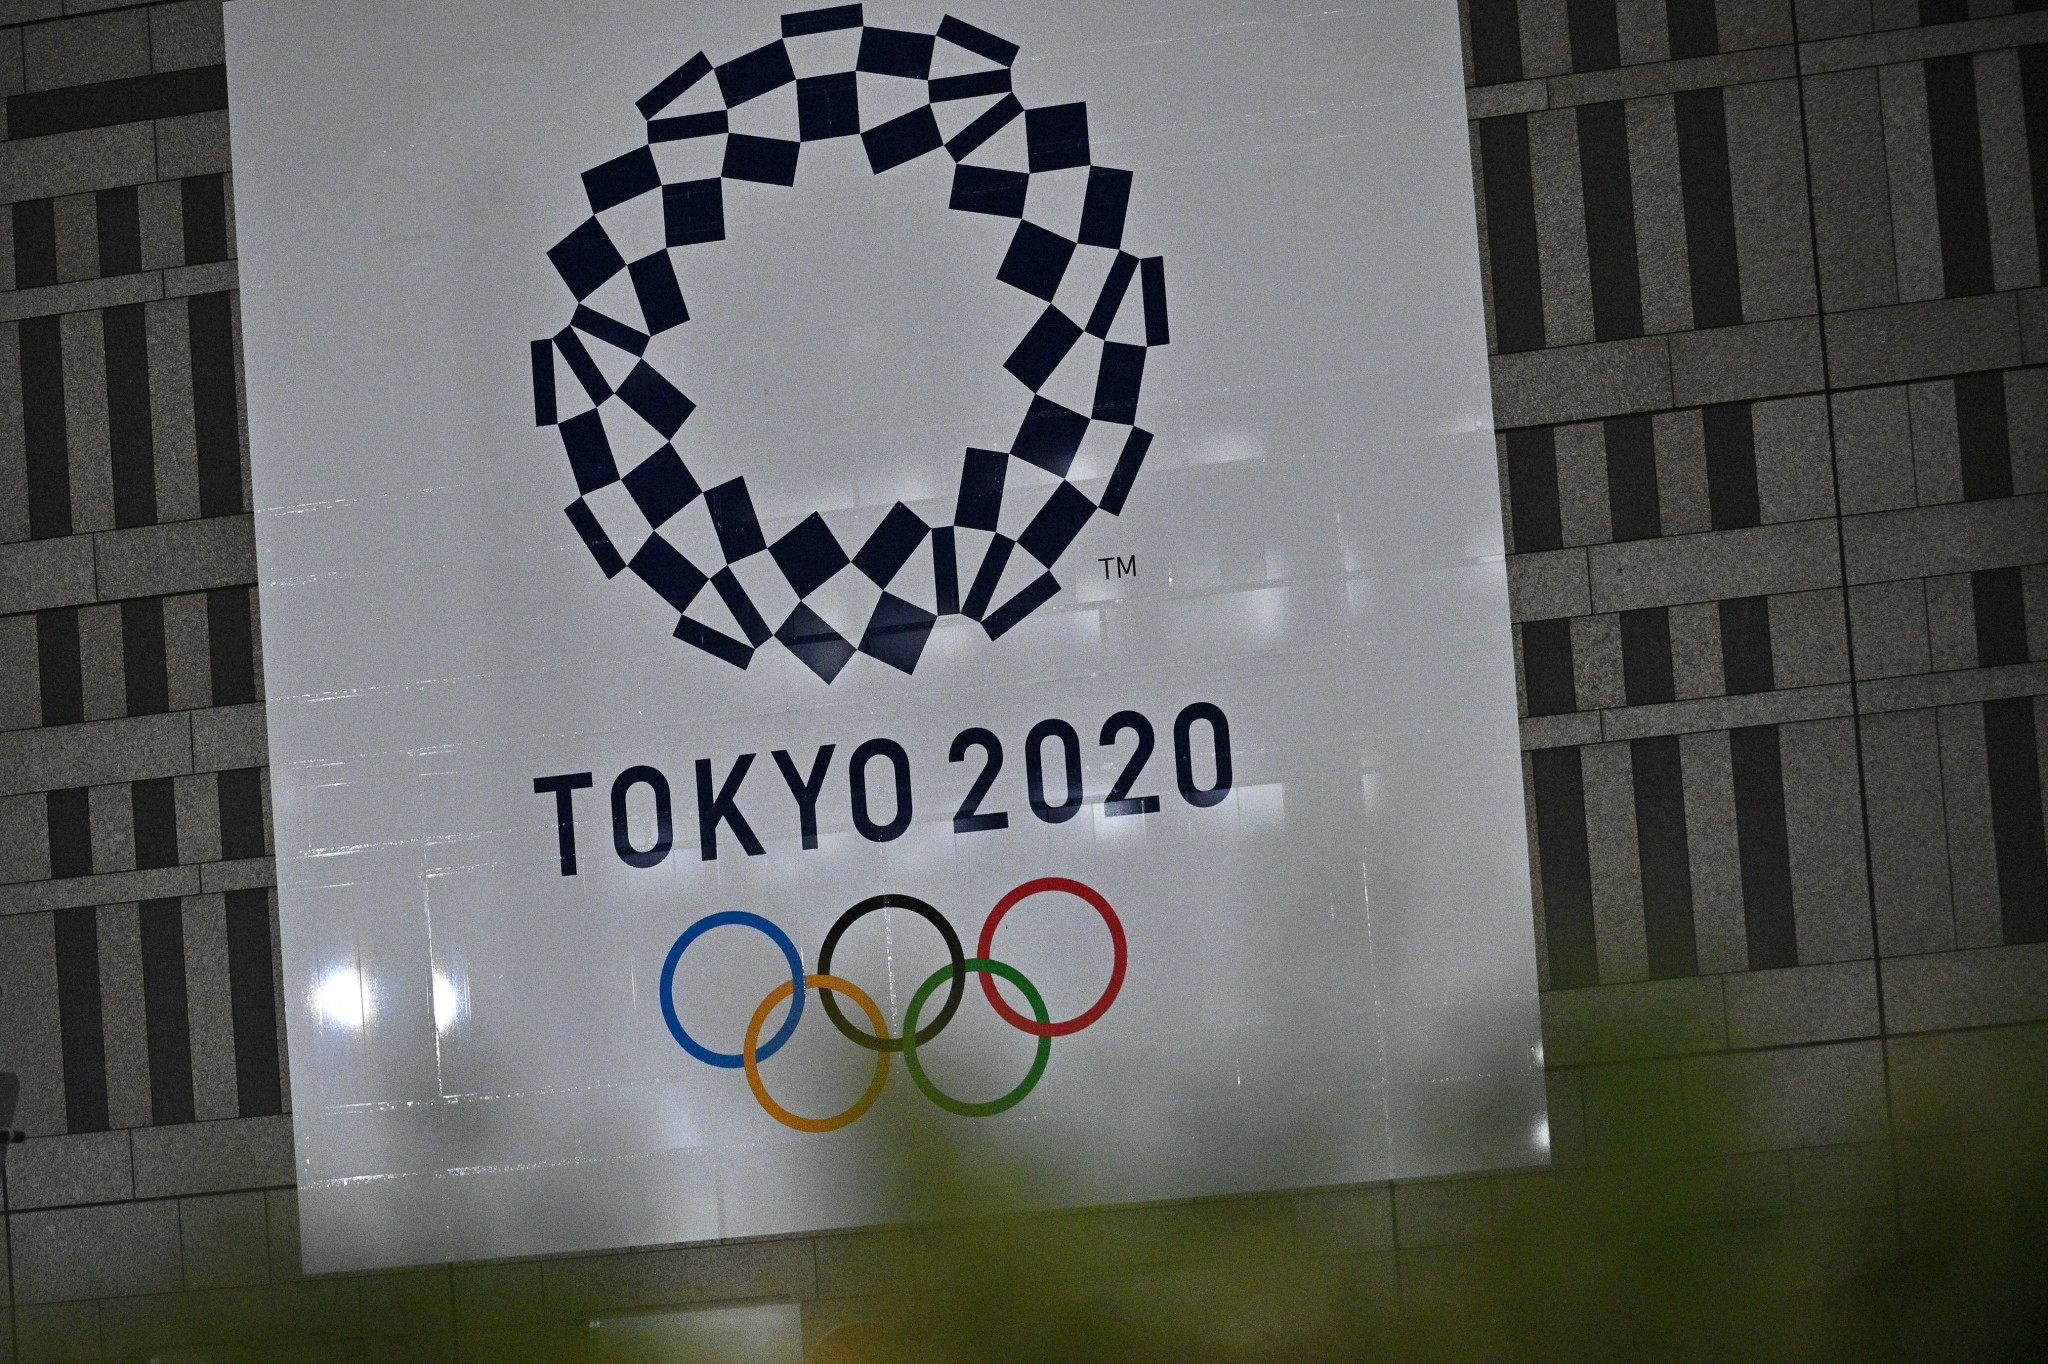 The original Tokyo 2020 Olympic logo ©Getty Images